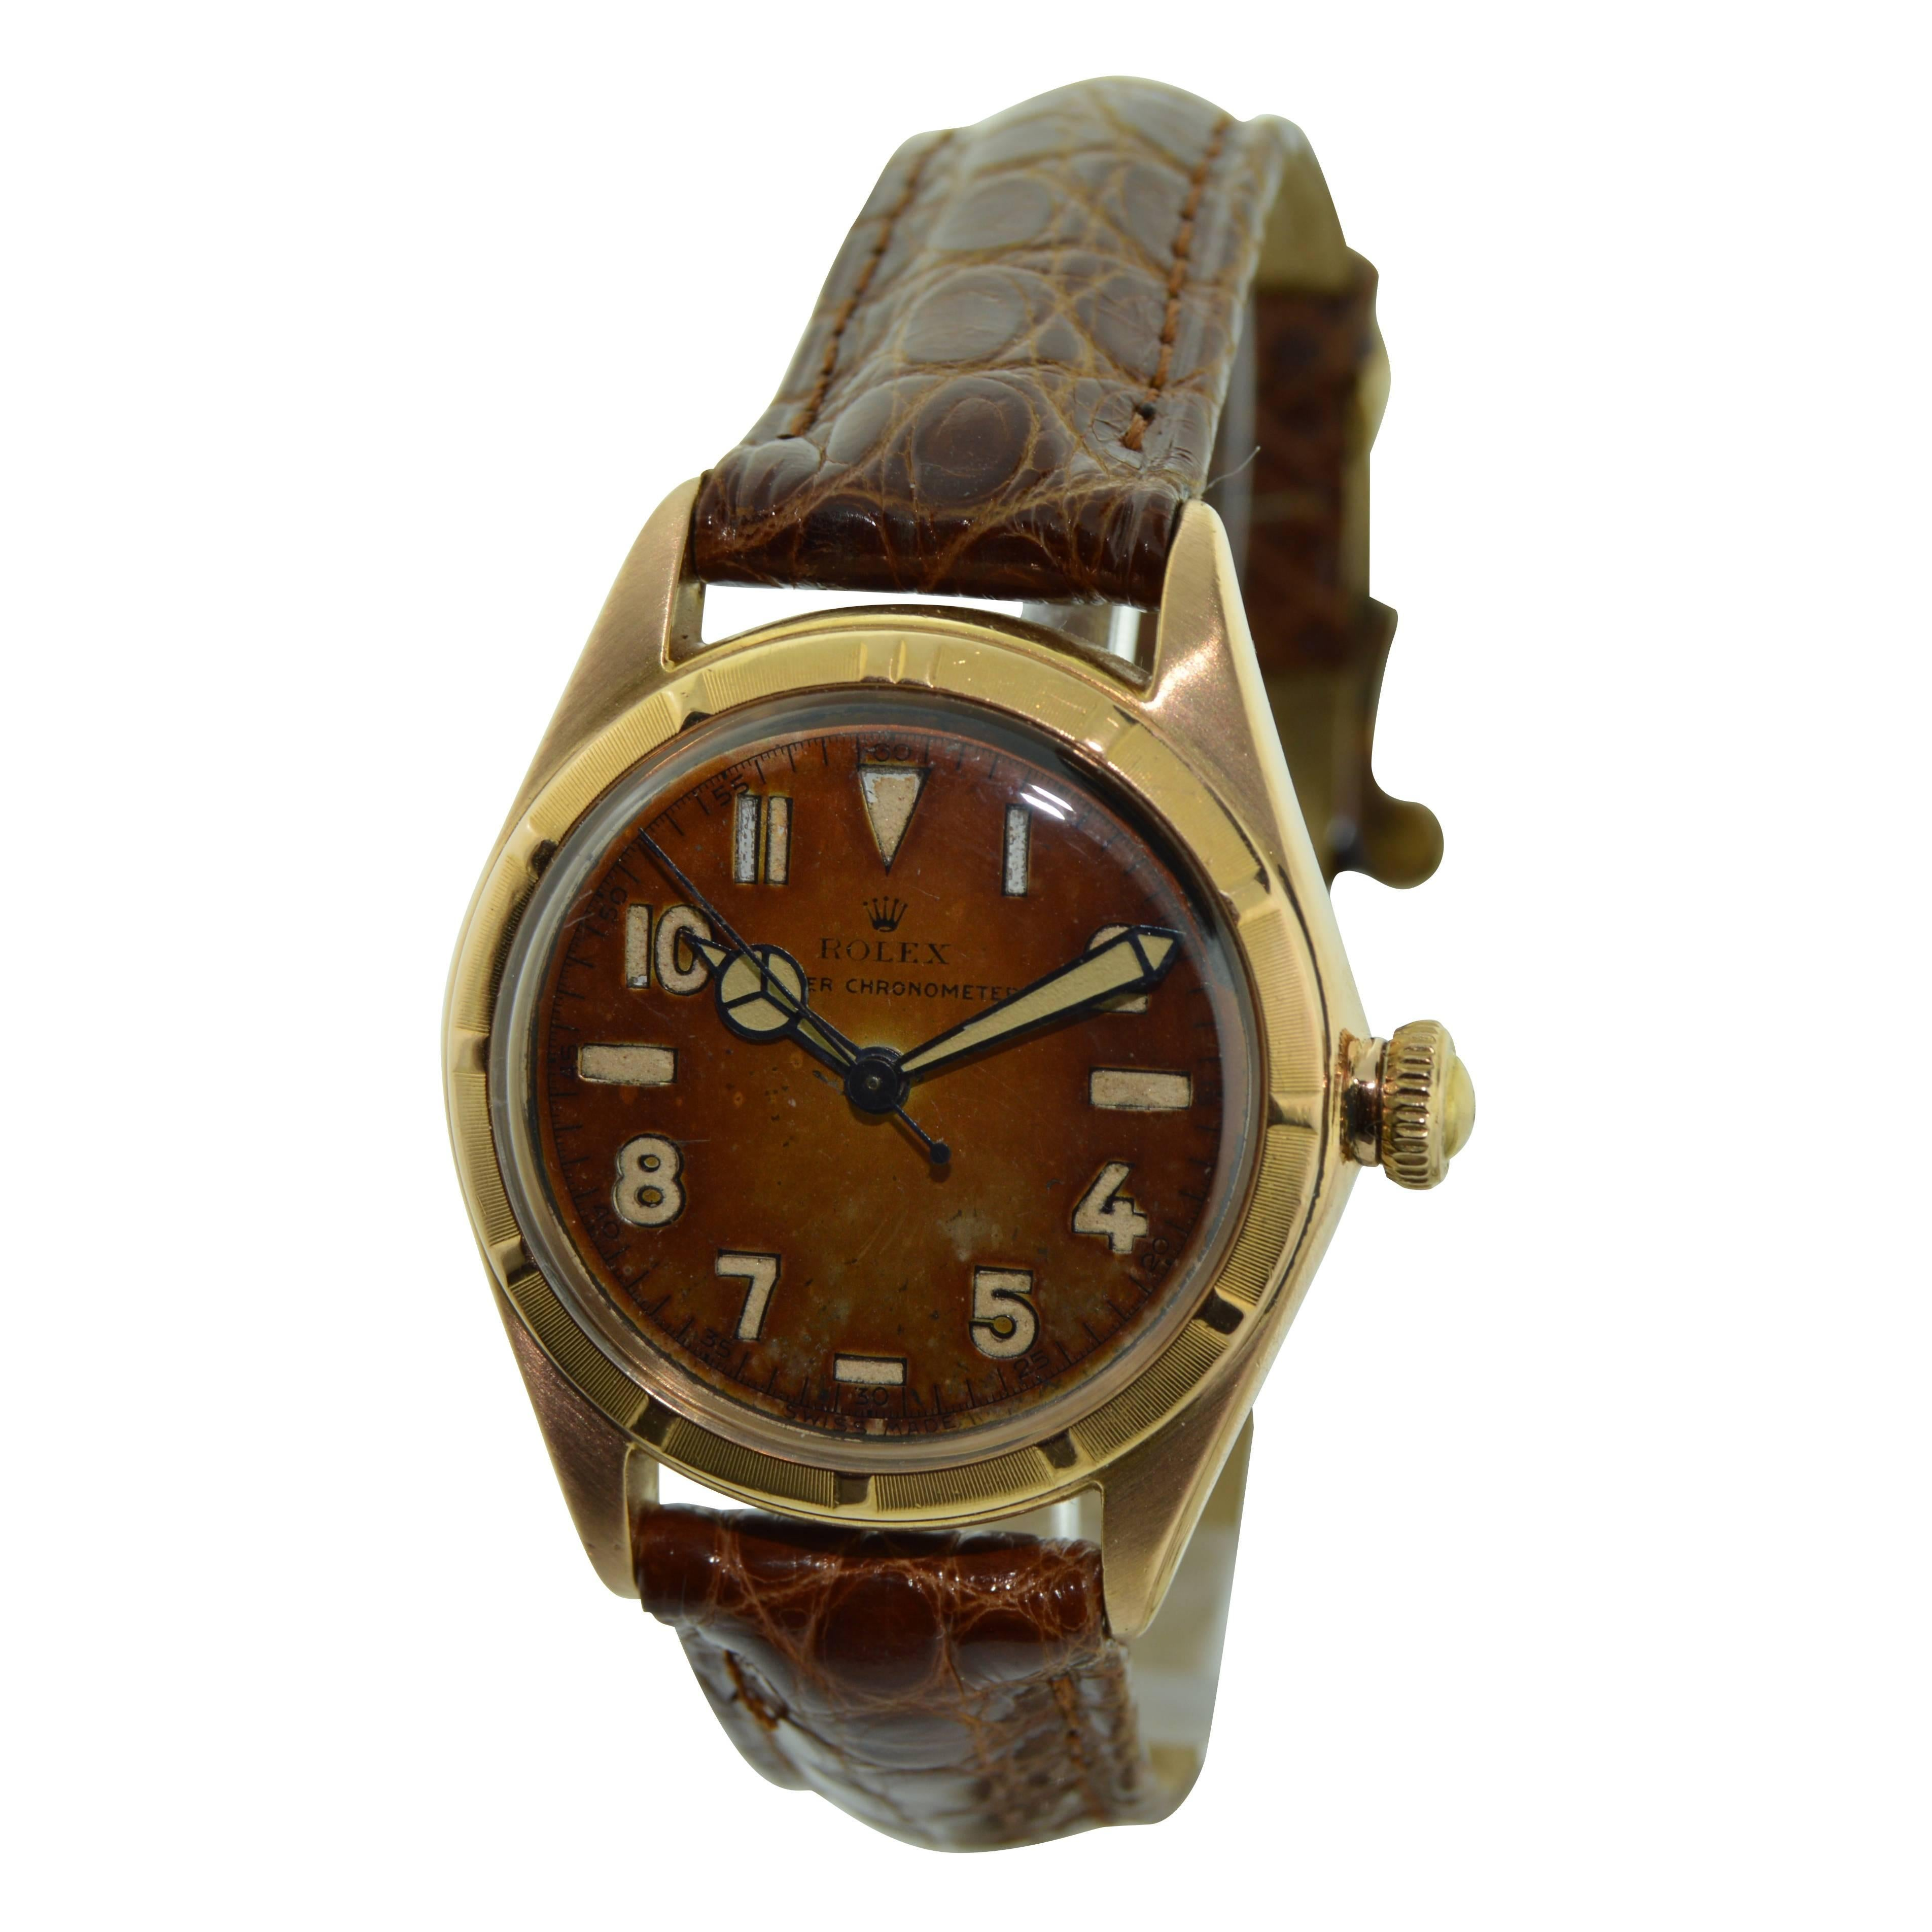 Rolex Rose Gold Bubble Back 3/4 Size Watch with Original Patinated Dial